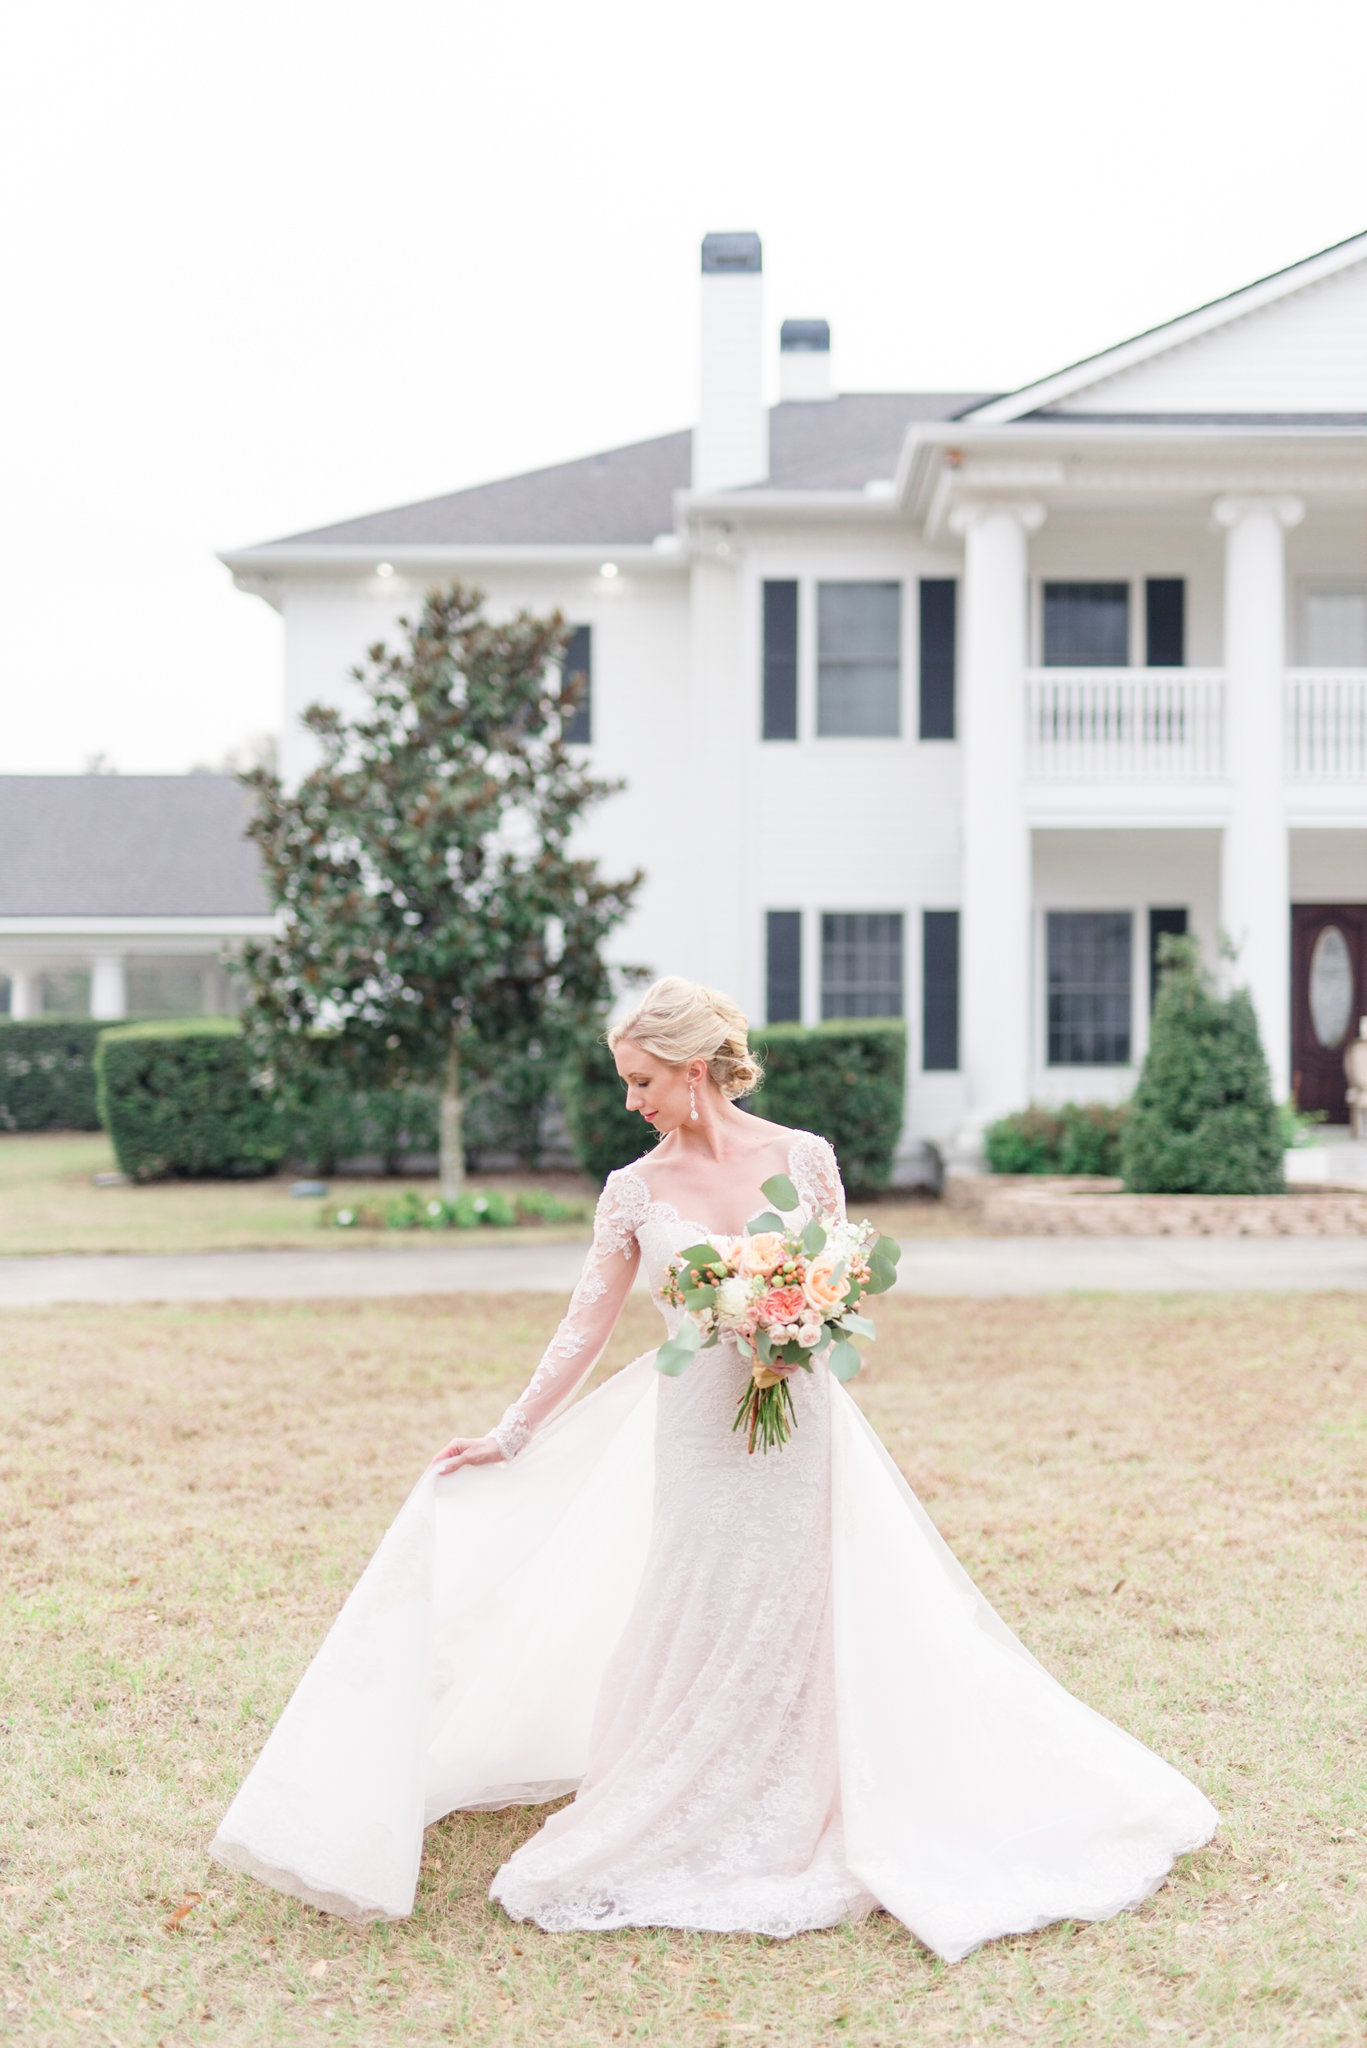 Bride stand in front of white mansion.